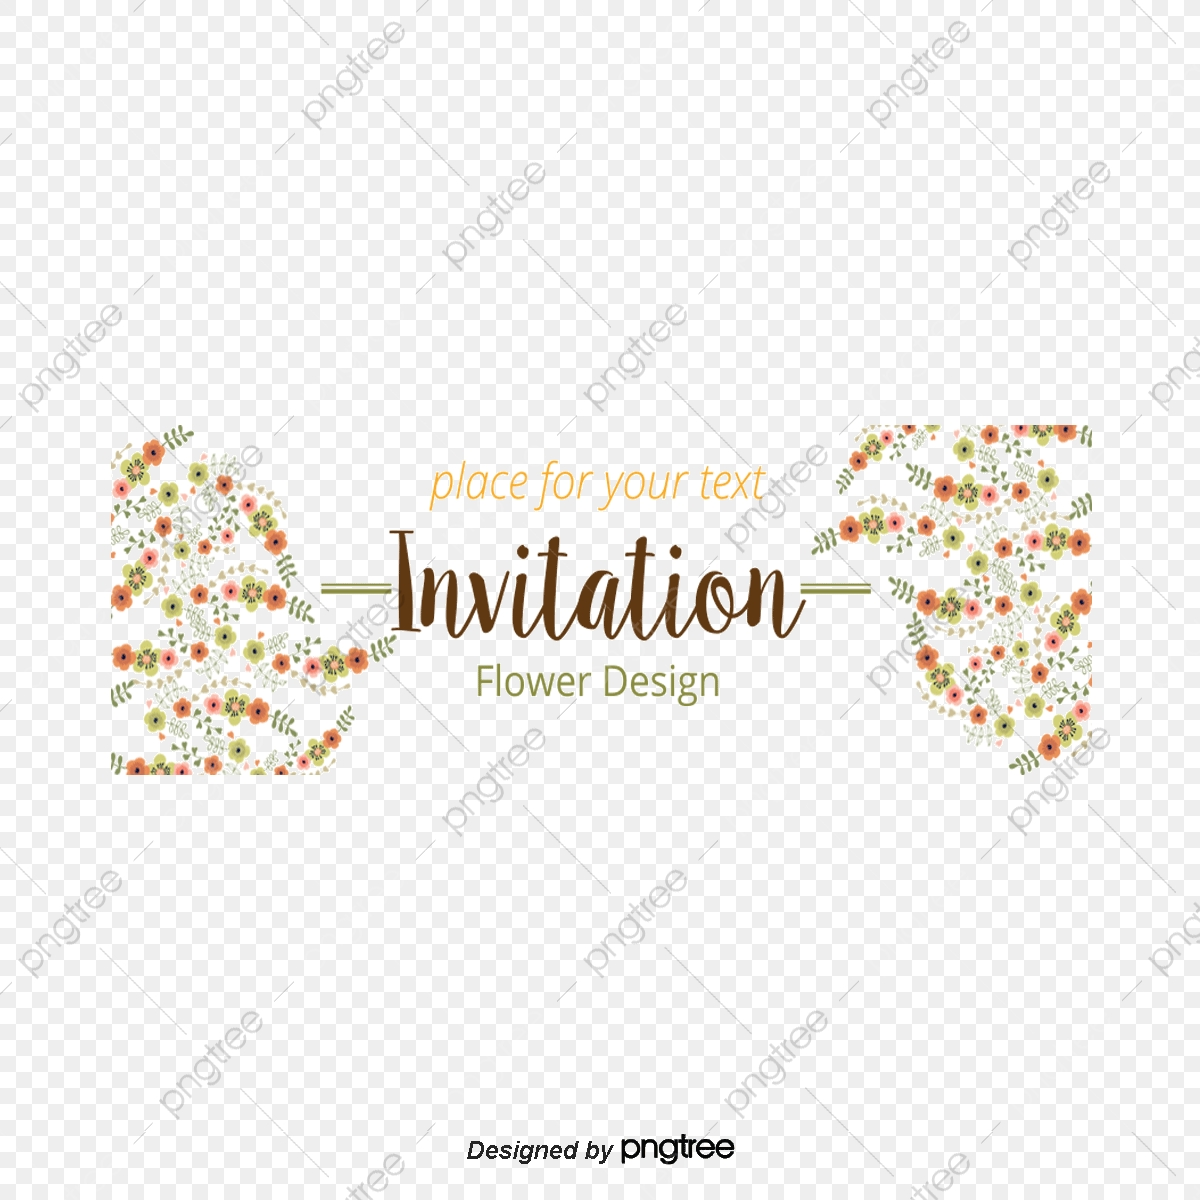 Creative Wedding Cards Png Free Creative Wedding Cards Png Transparent Images 134703 Pngio